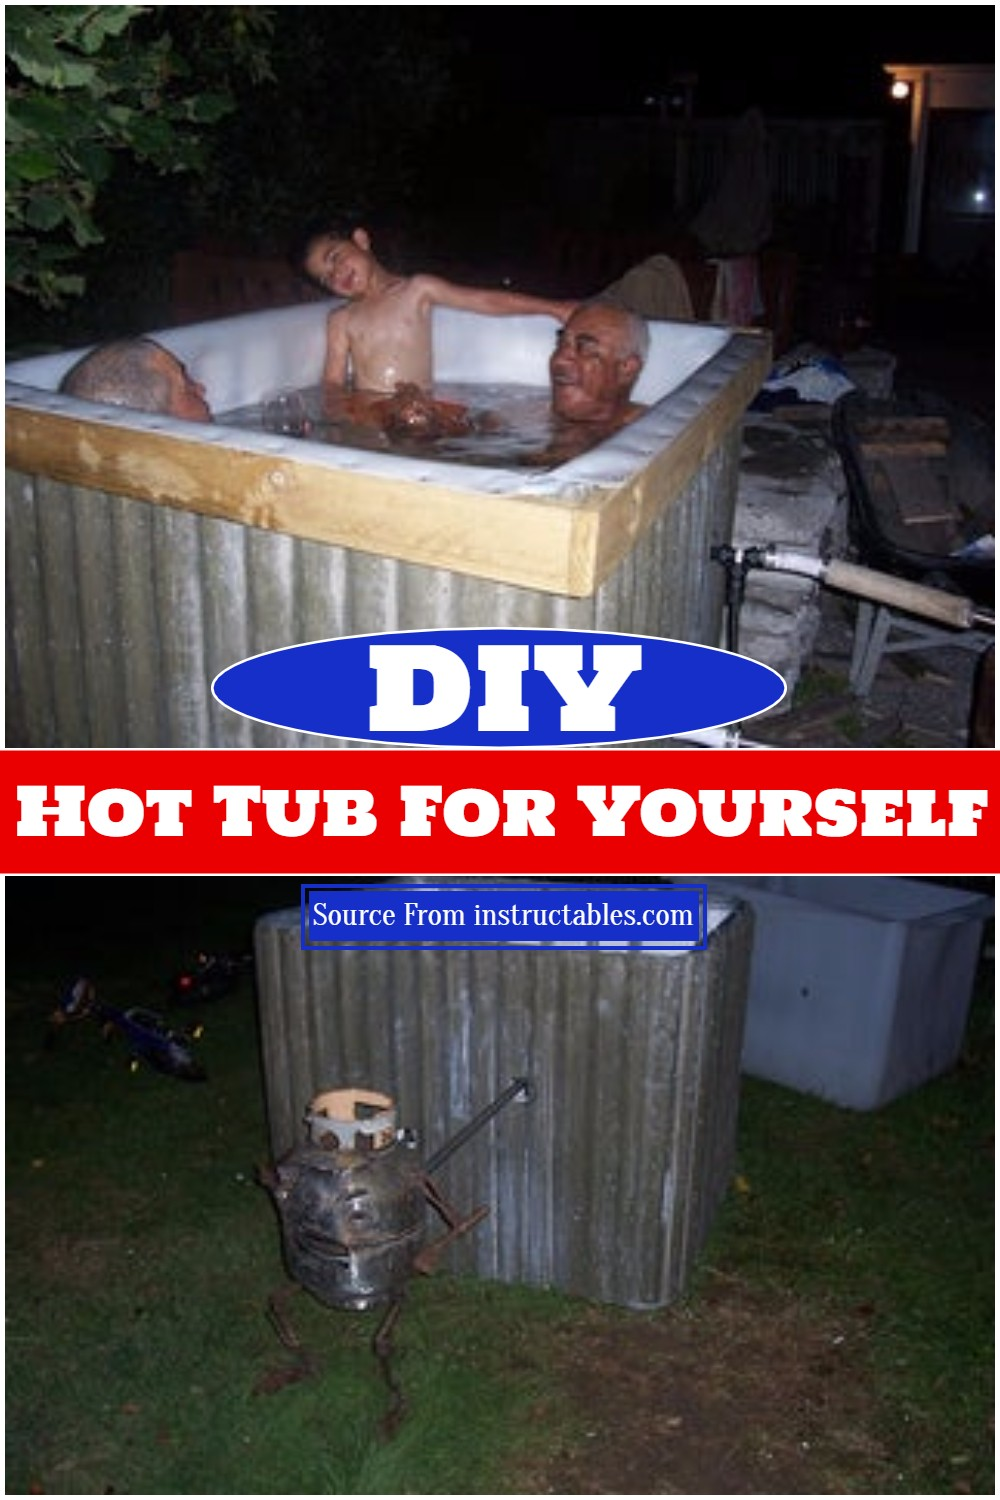 DIY Hot Tub For Yourself